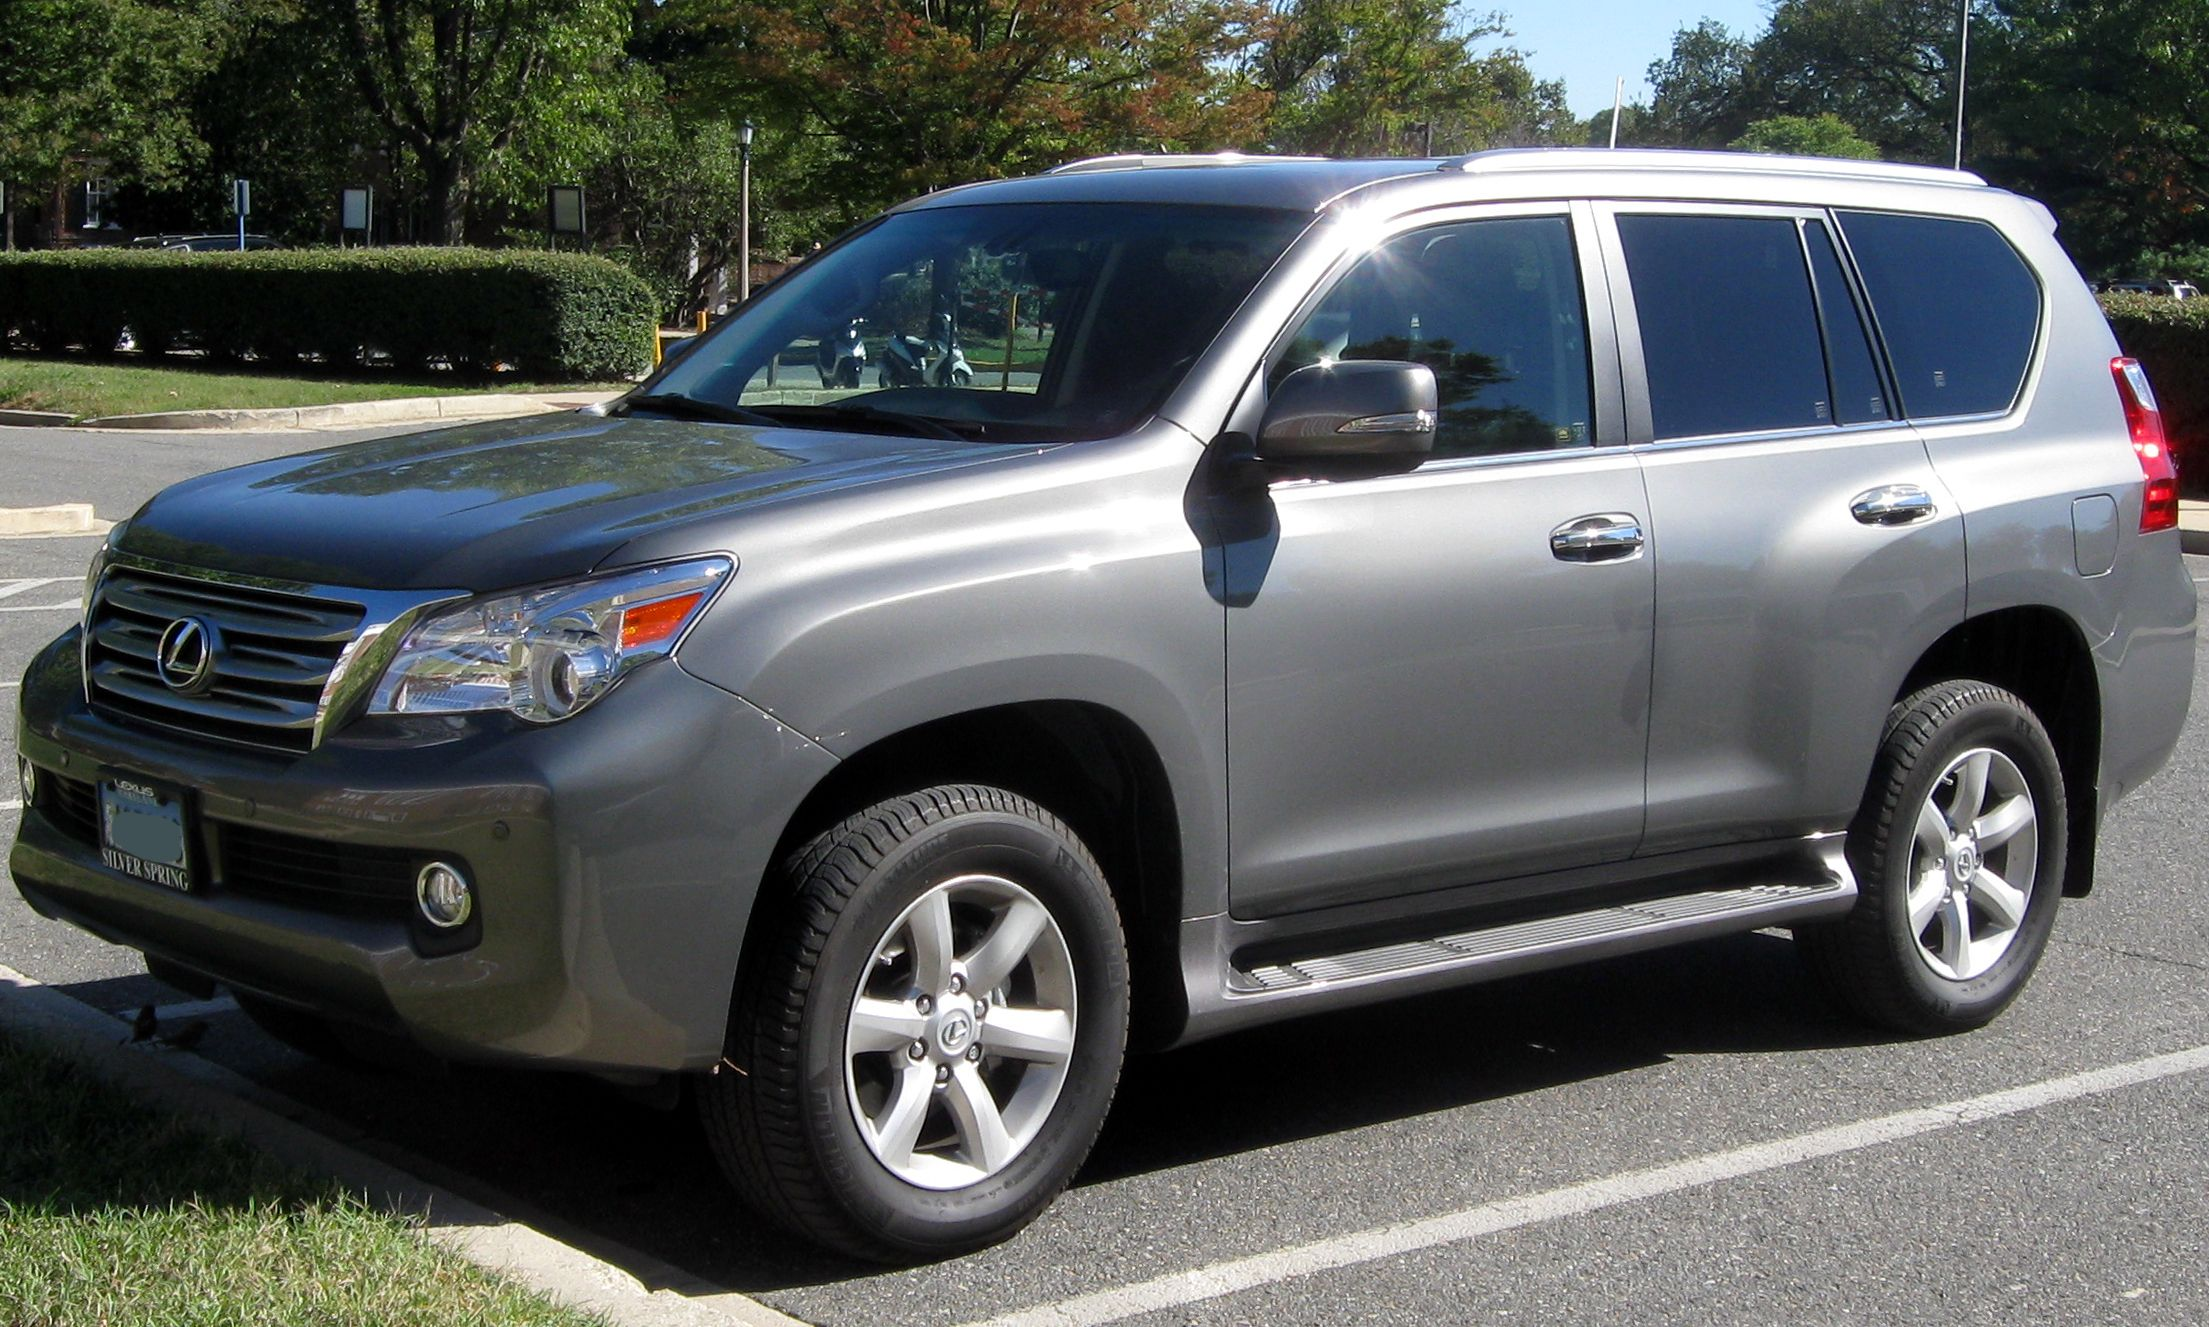 2017 lexus gx 460 redesign toyota is again going to dispatch another 2017 lexus gx 460 to add to its profoundly extravagant suv s this new model